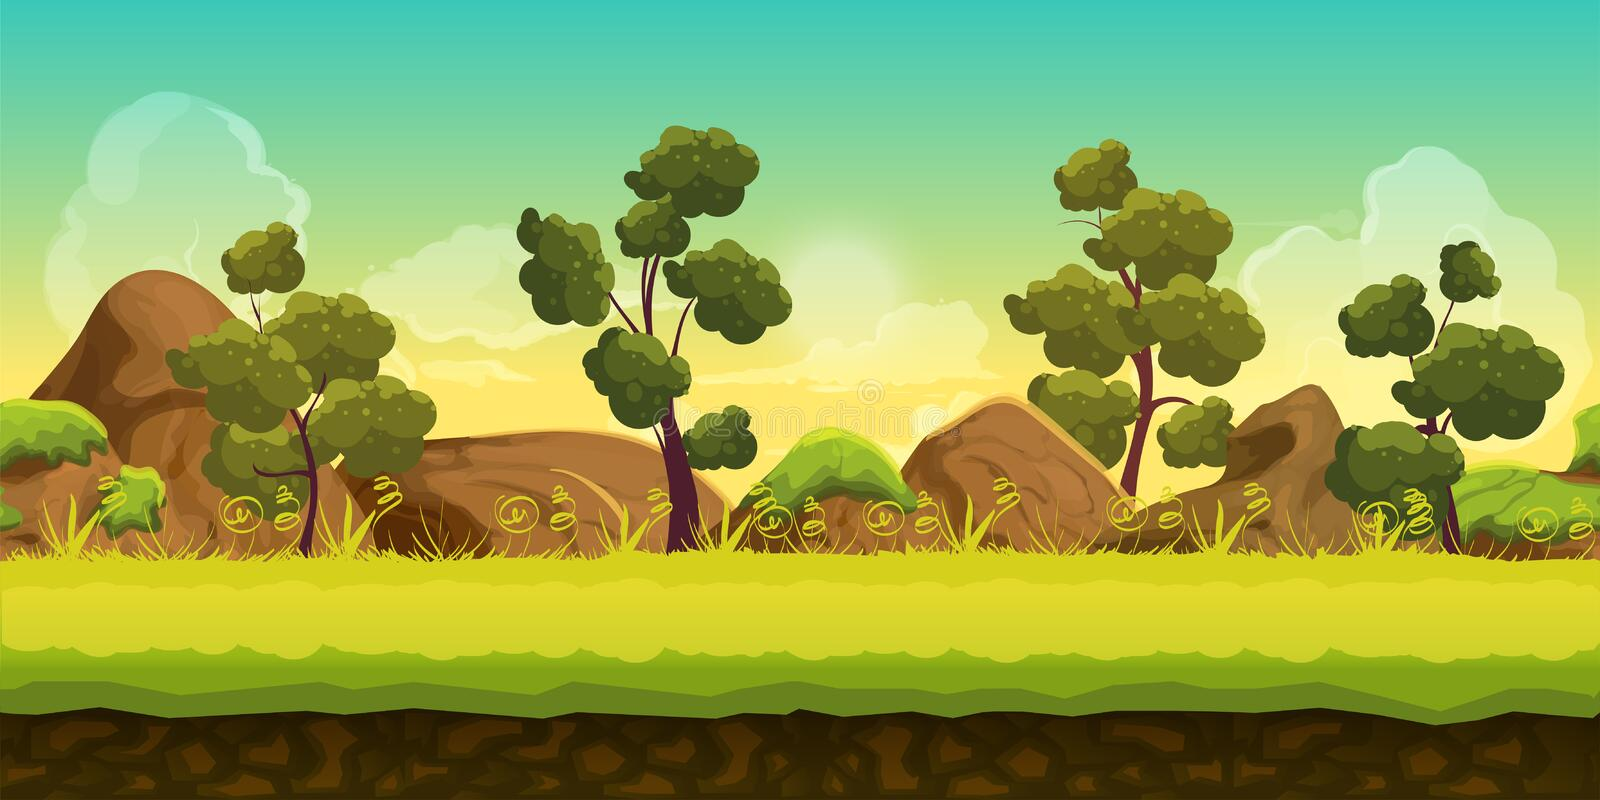 Forest And Stones 2d Game Landscape For Games Mobile